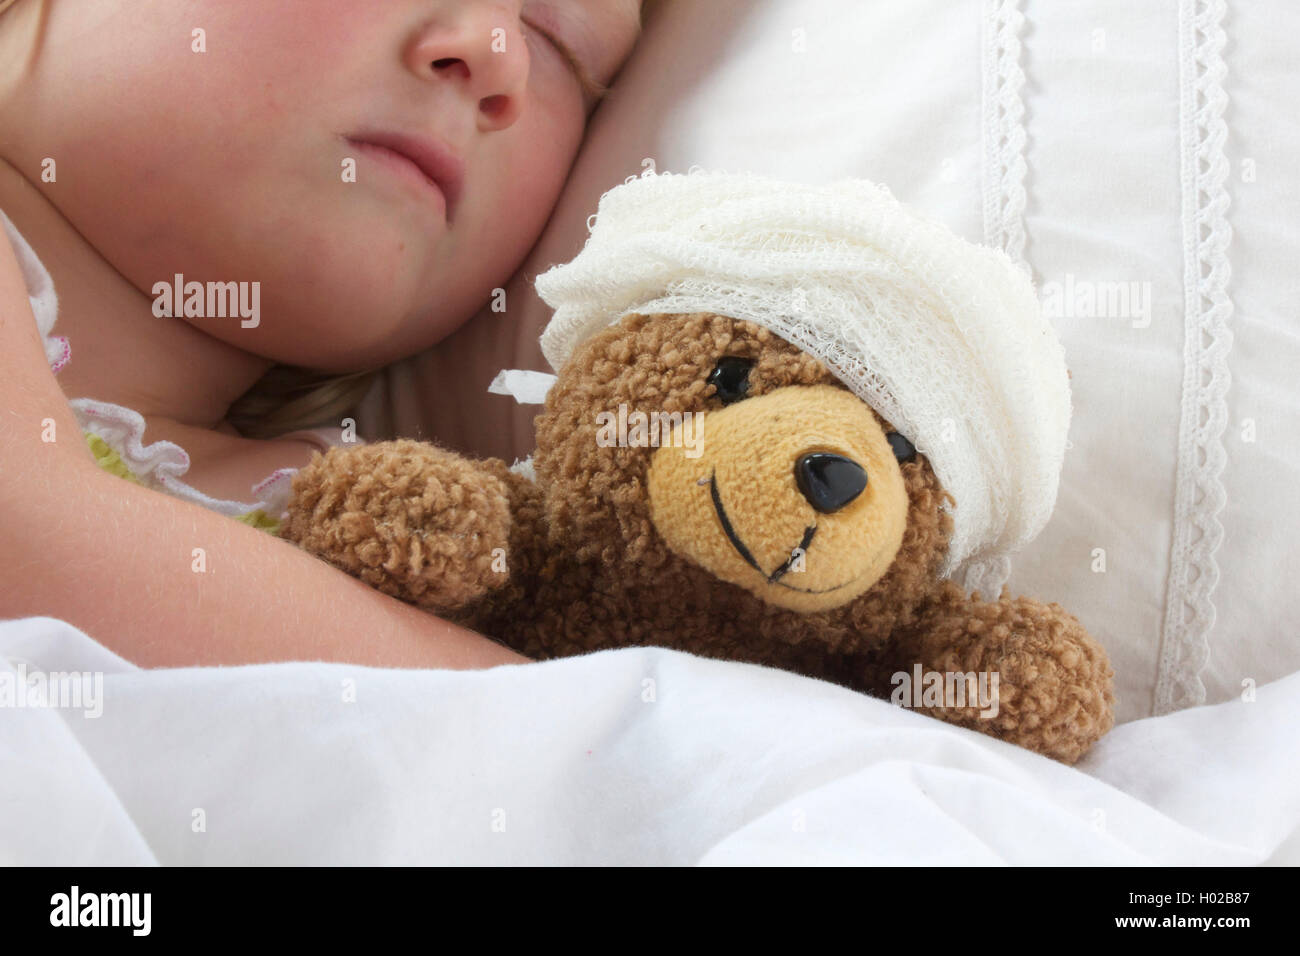 A young girl poorly in bad cuddling her teddy who also feels poorly. - Stock Image